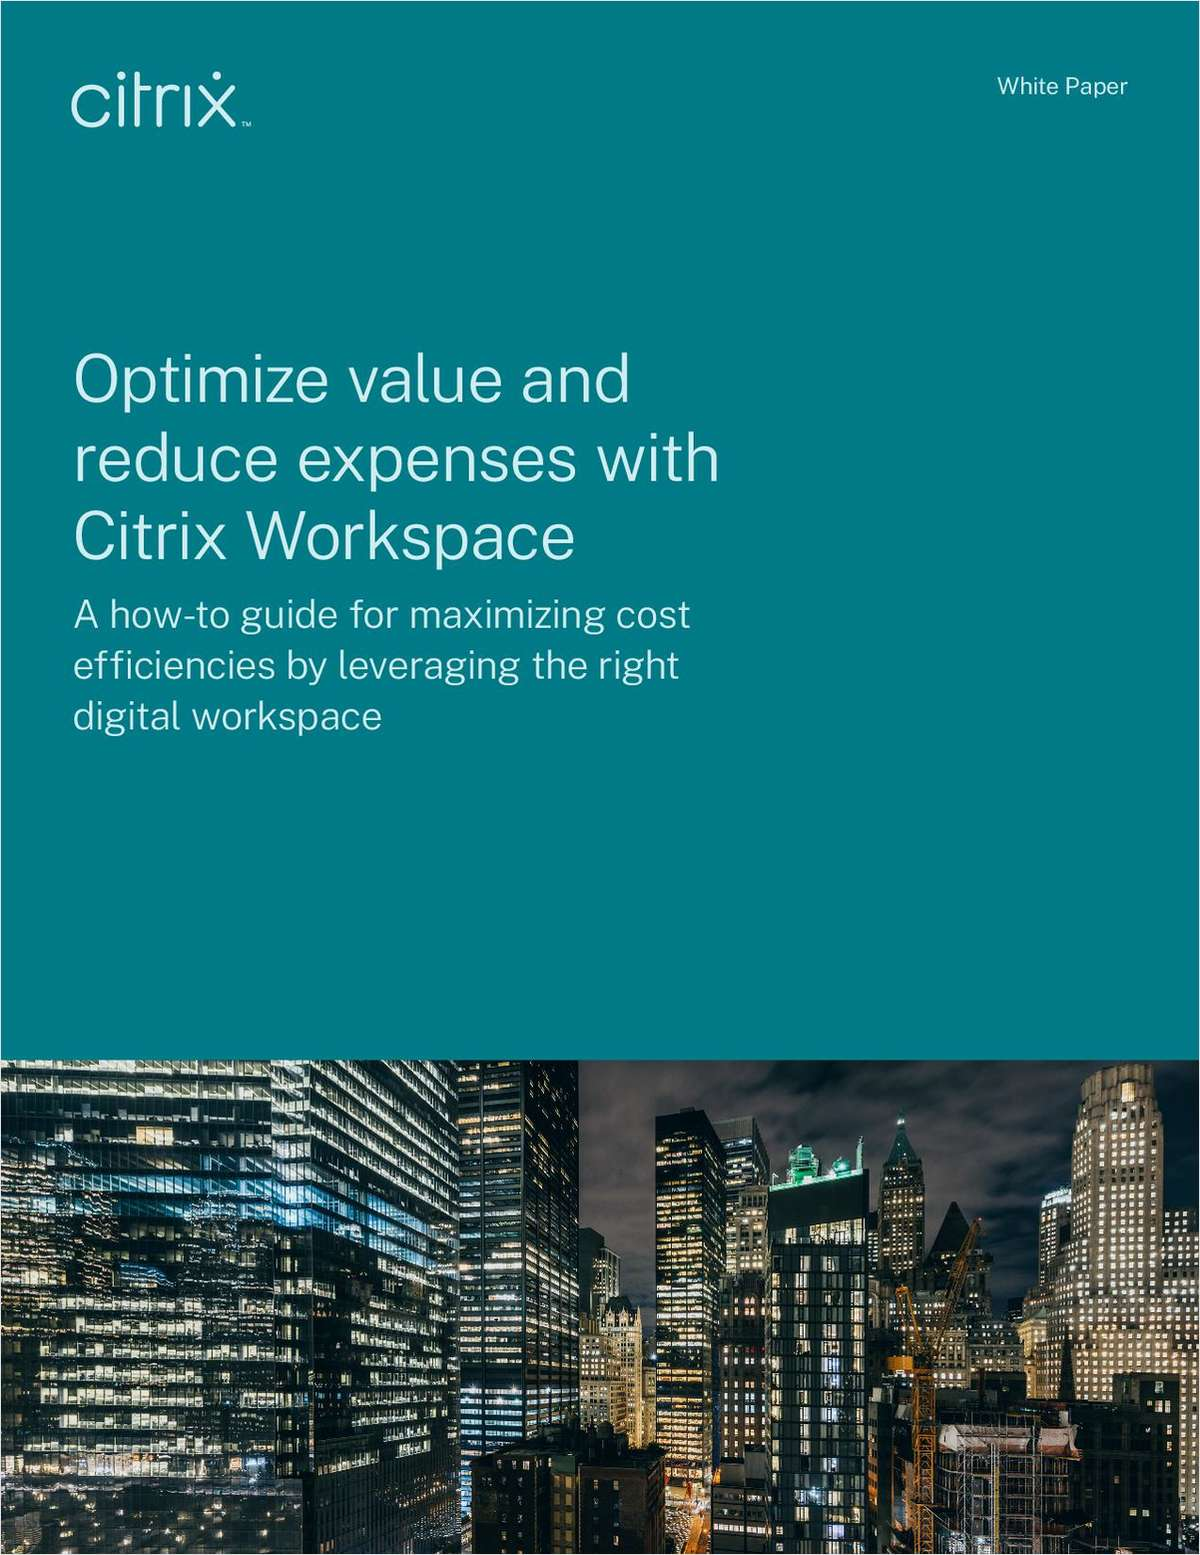 Optimize Value and Reduce Expenses with Citrix Workspace